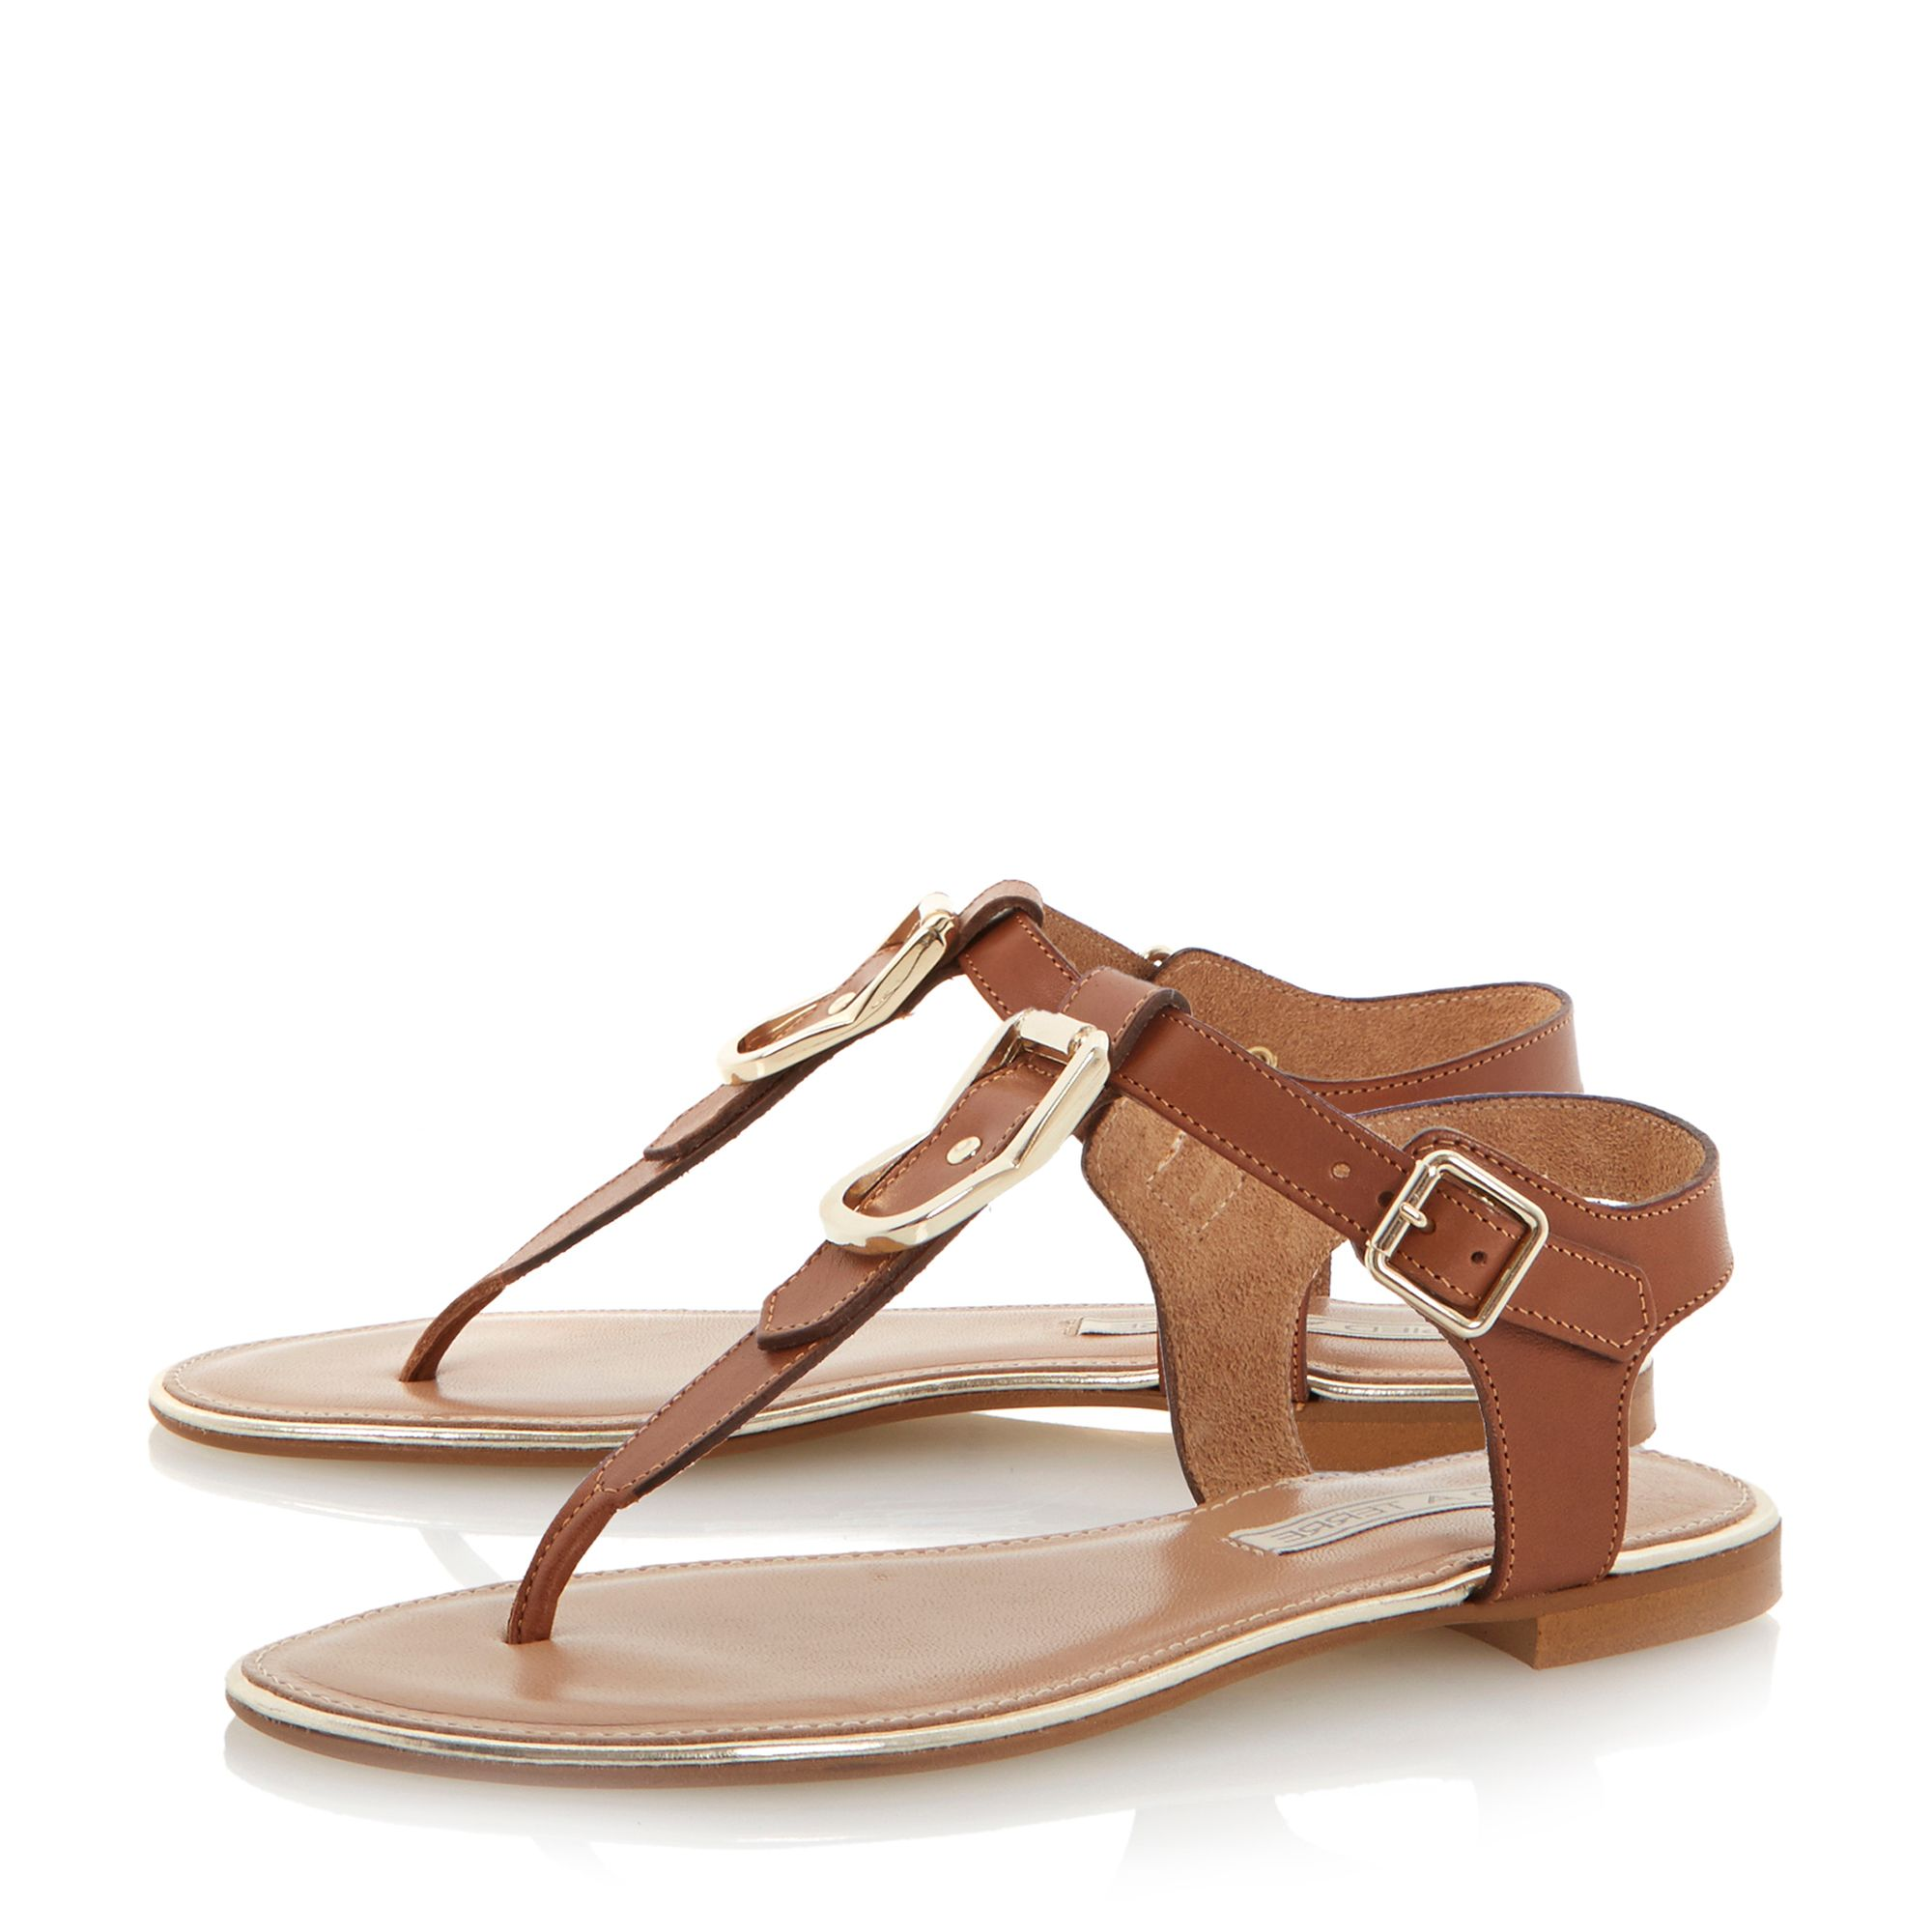 Juckle leather flat sandals